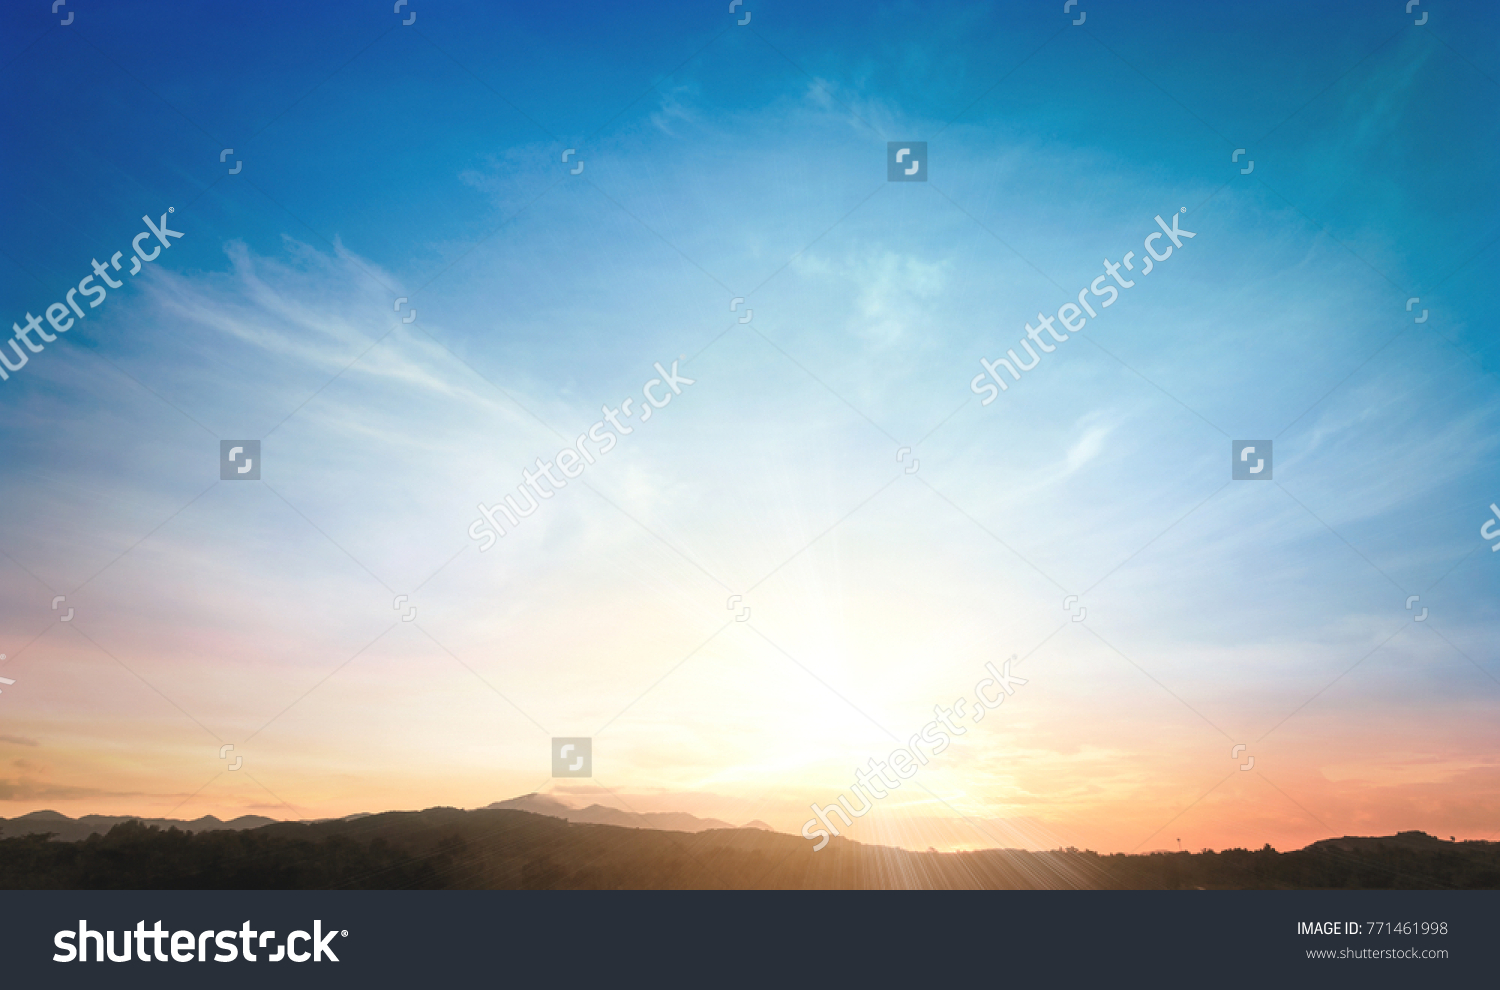 World environment day concept: Sun light and mountain sky of heaven autumn sunset background #771461998